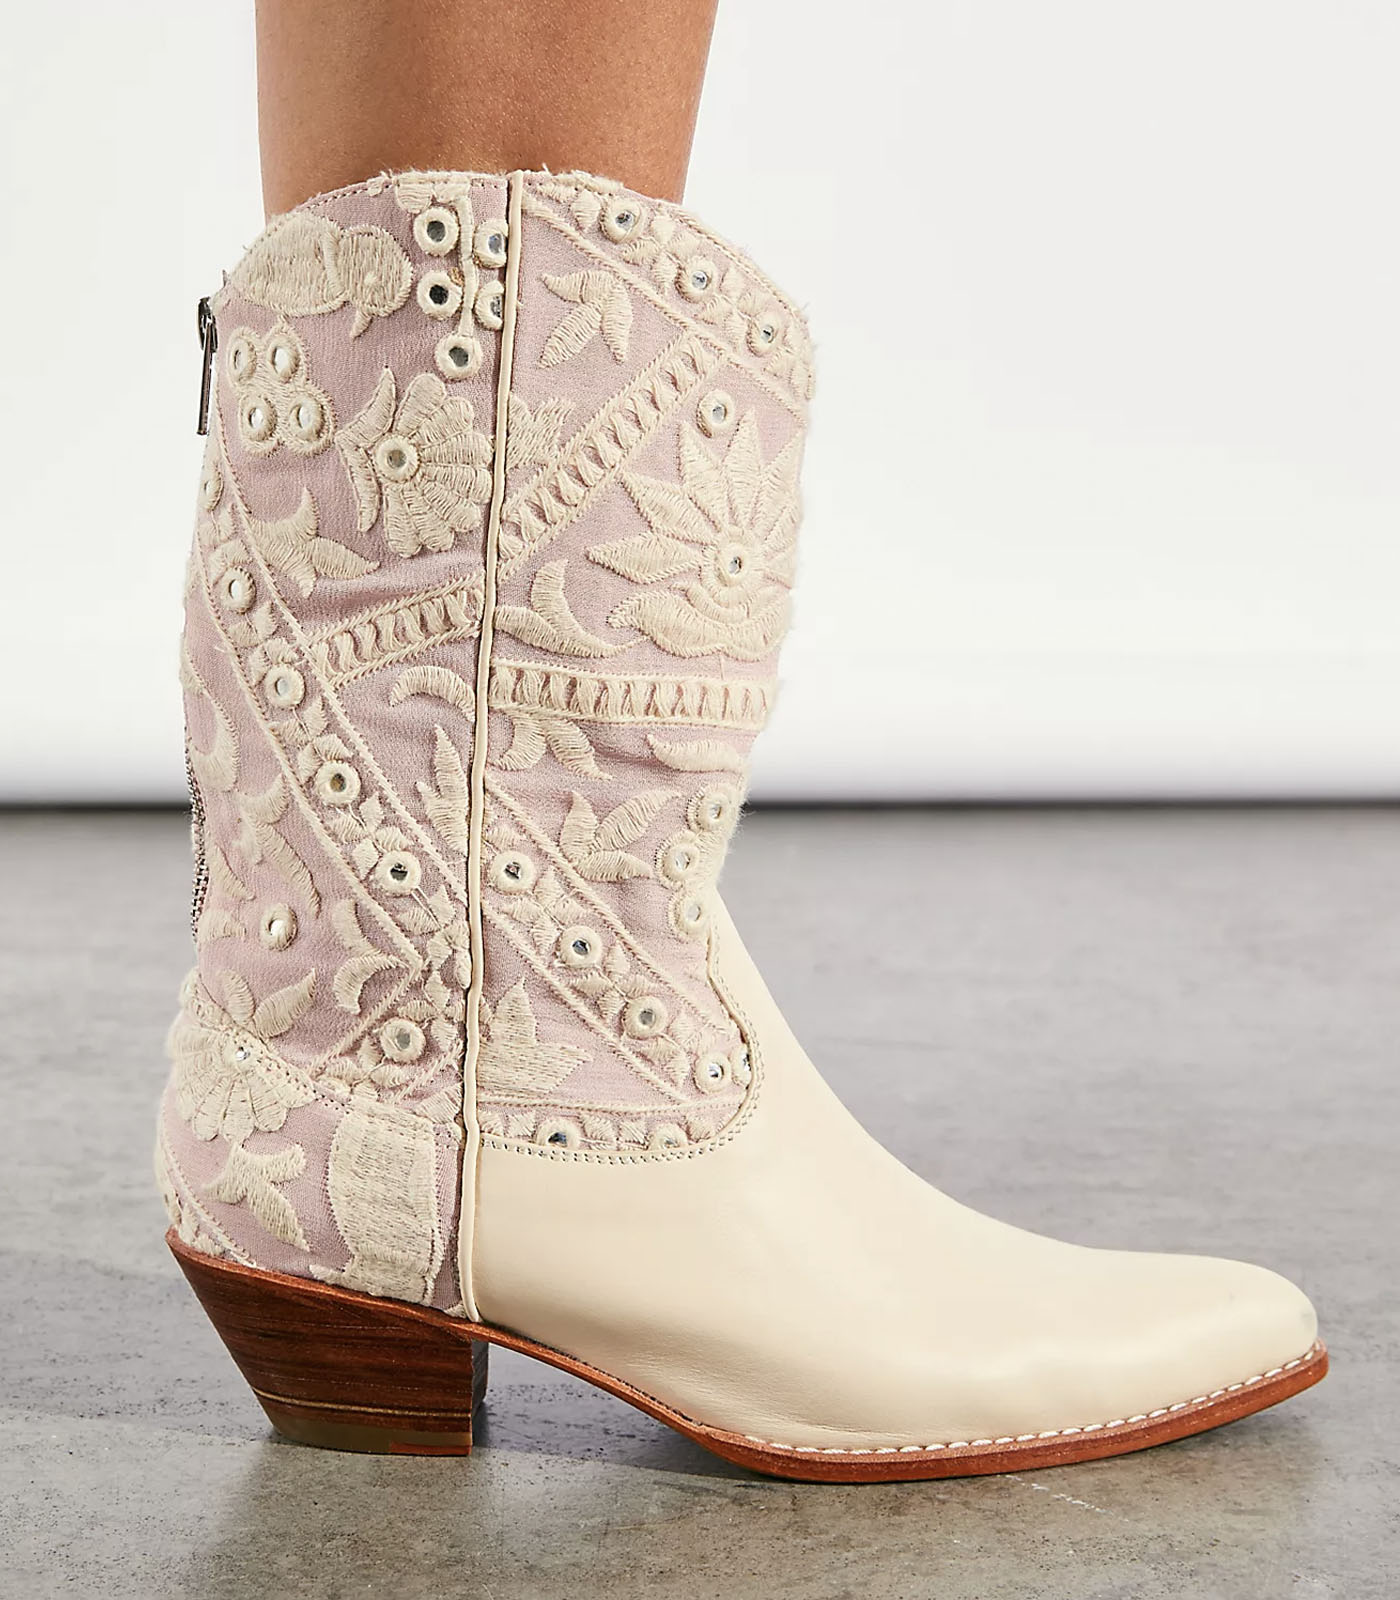 Embroidered Western Cowboy Boots for Wedding Day